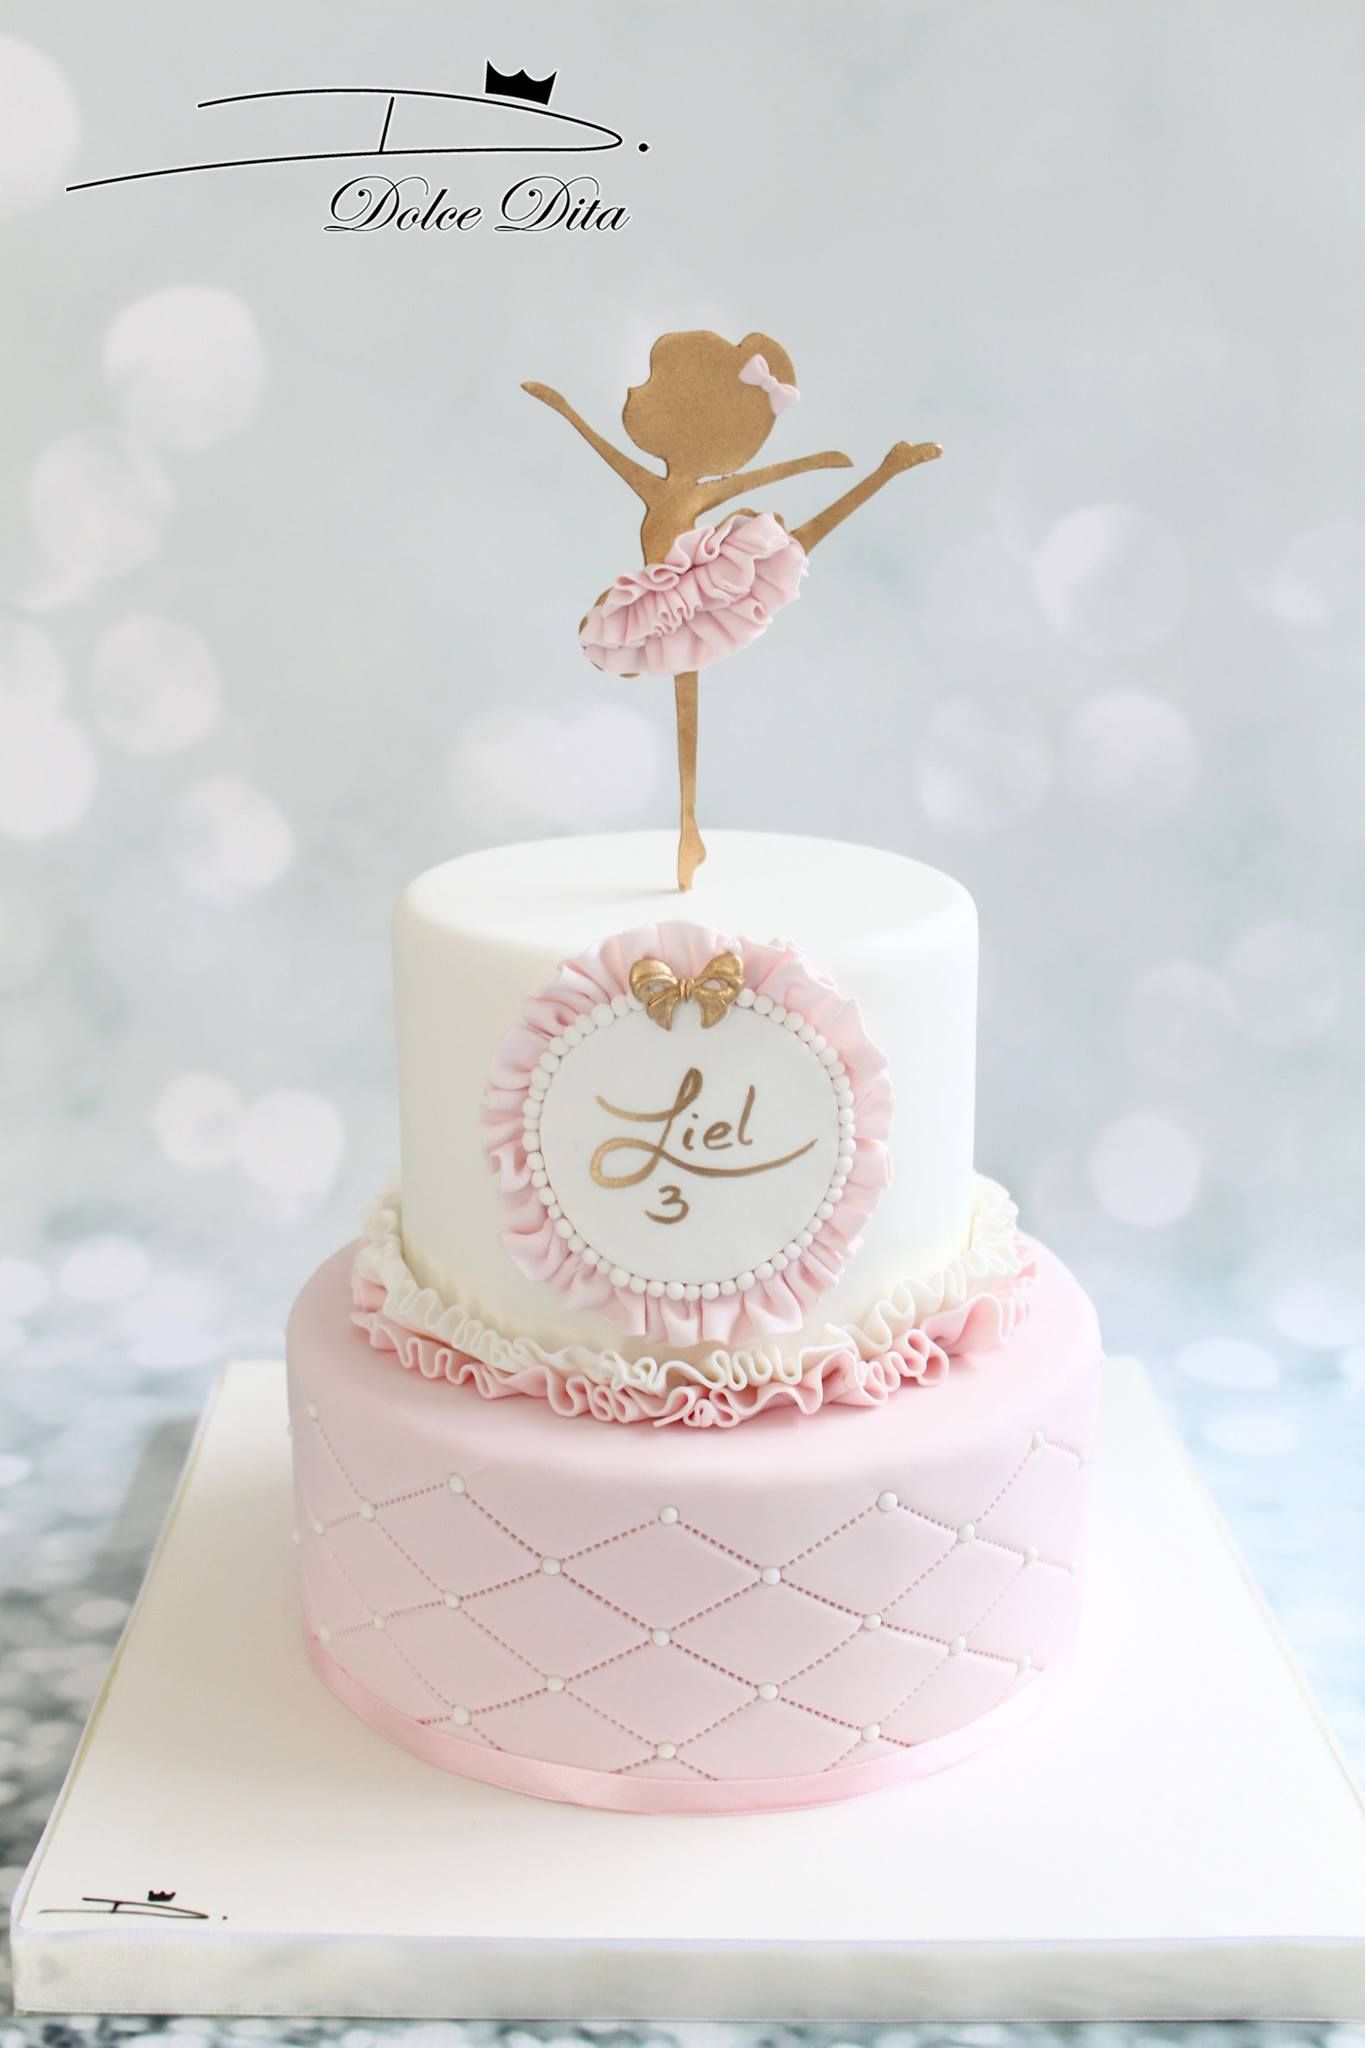 Marvelous Dolcedita Cakedesign With Images Ballerina Birthday Cake Personalised Birthday Cards Paralily Jamesorg